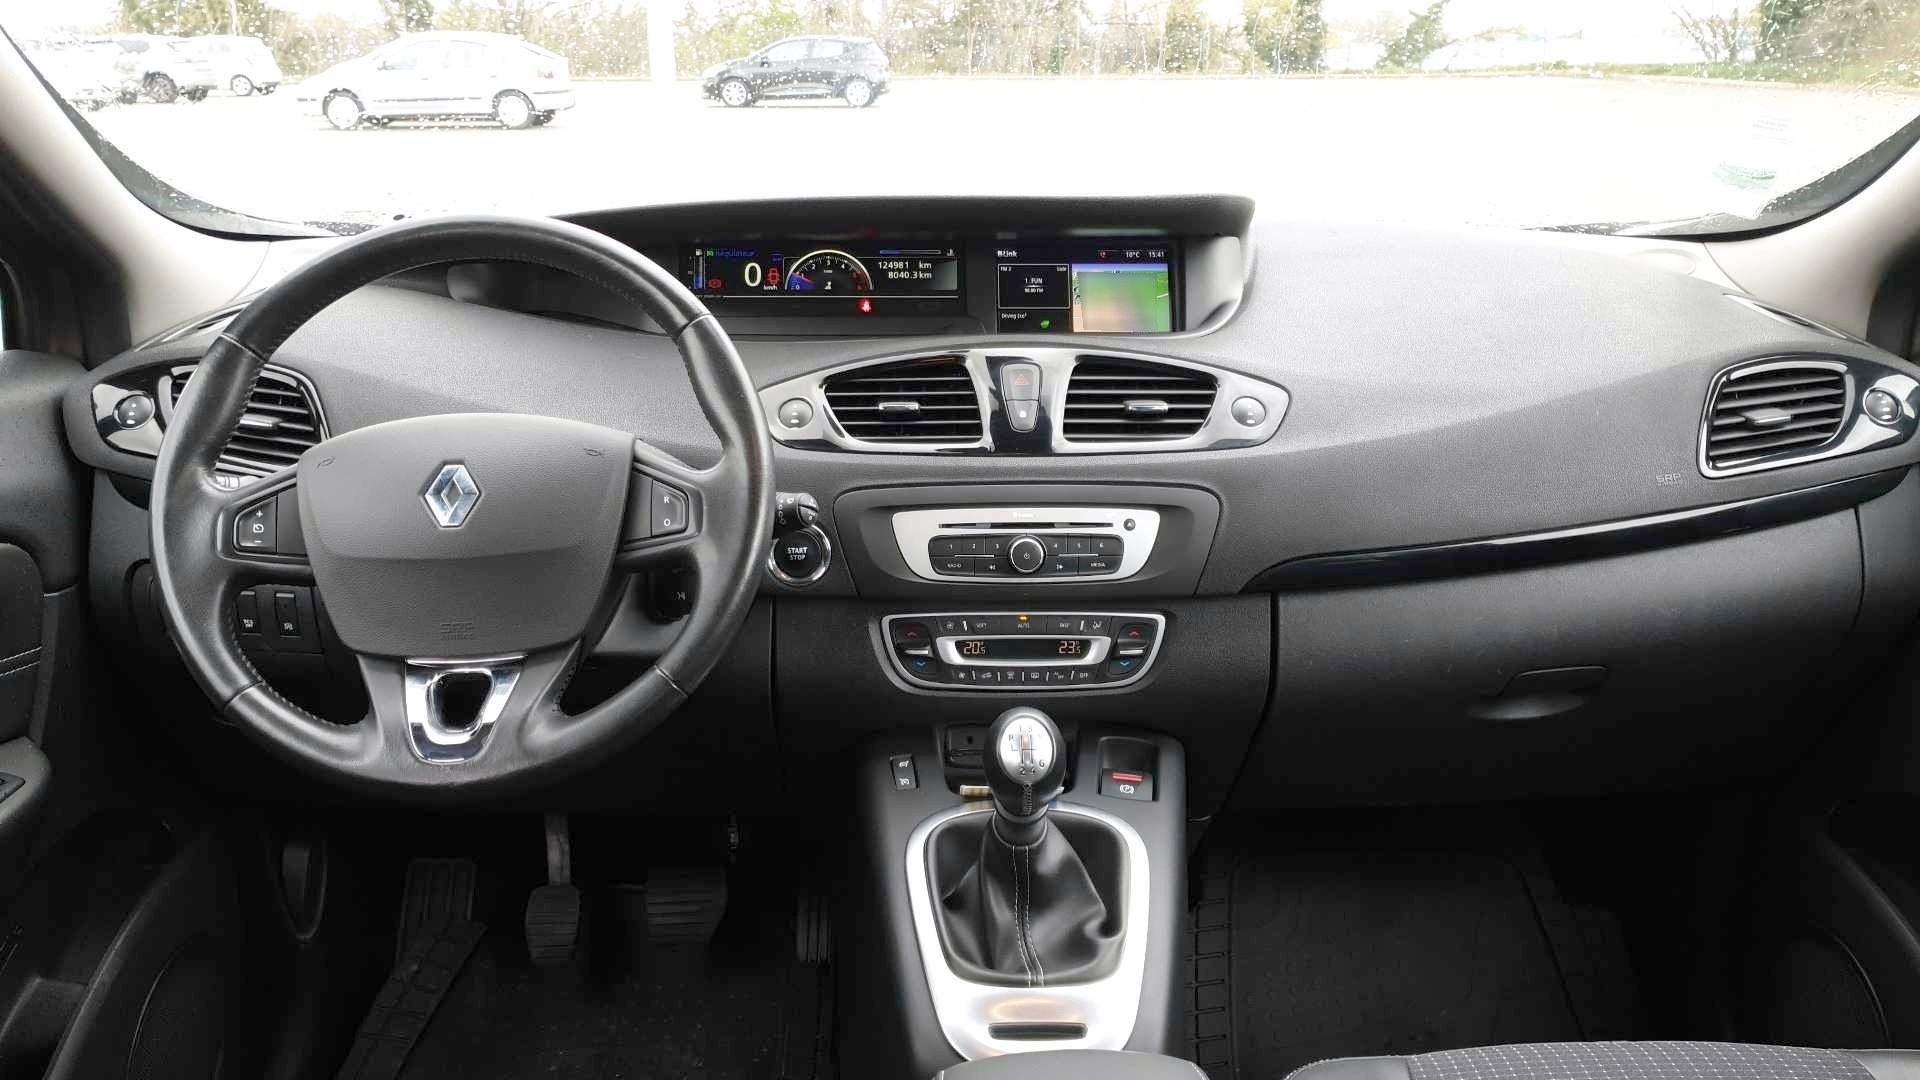 renault scenic iii business occasion 2015 ensemble tableau bord